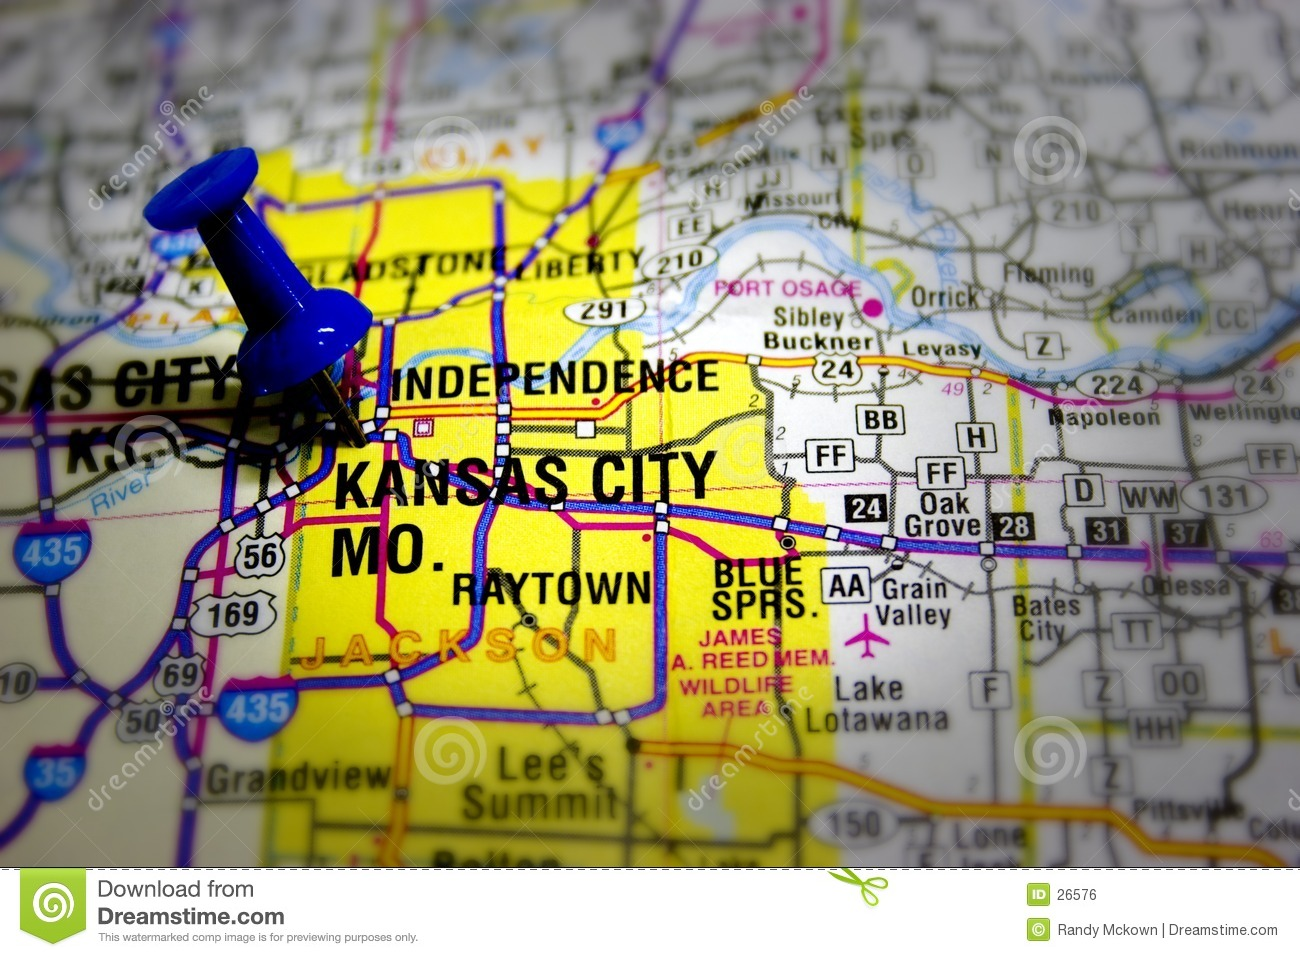 Kansas city map stock photo image of guide kansas drive 26576 kansas city map gumiabroncs Gallery